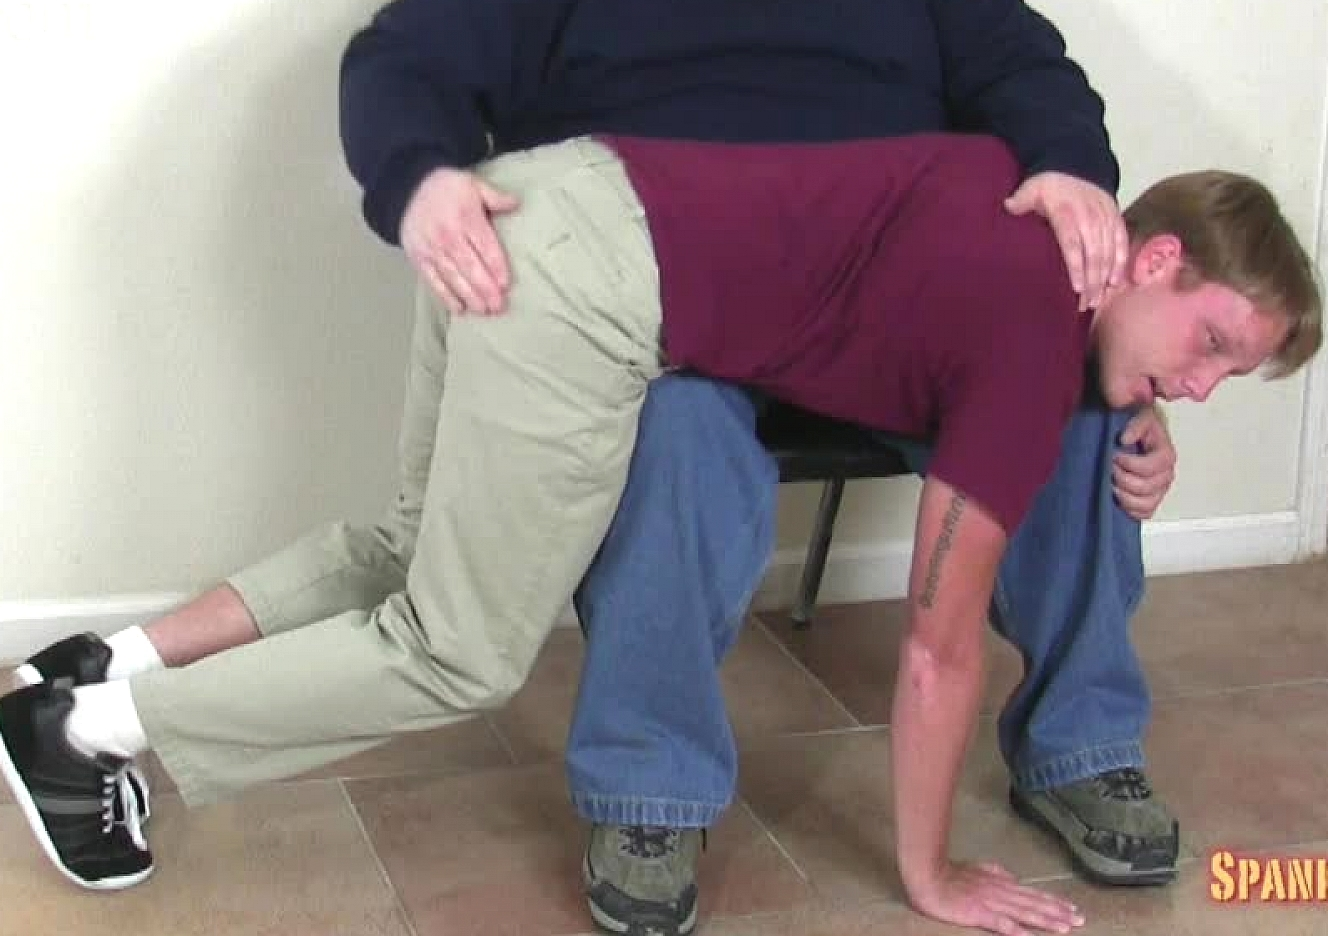 content/120426101-seans-first-spanking/0.jpg